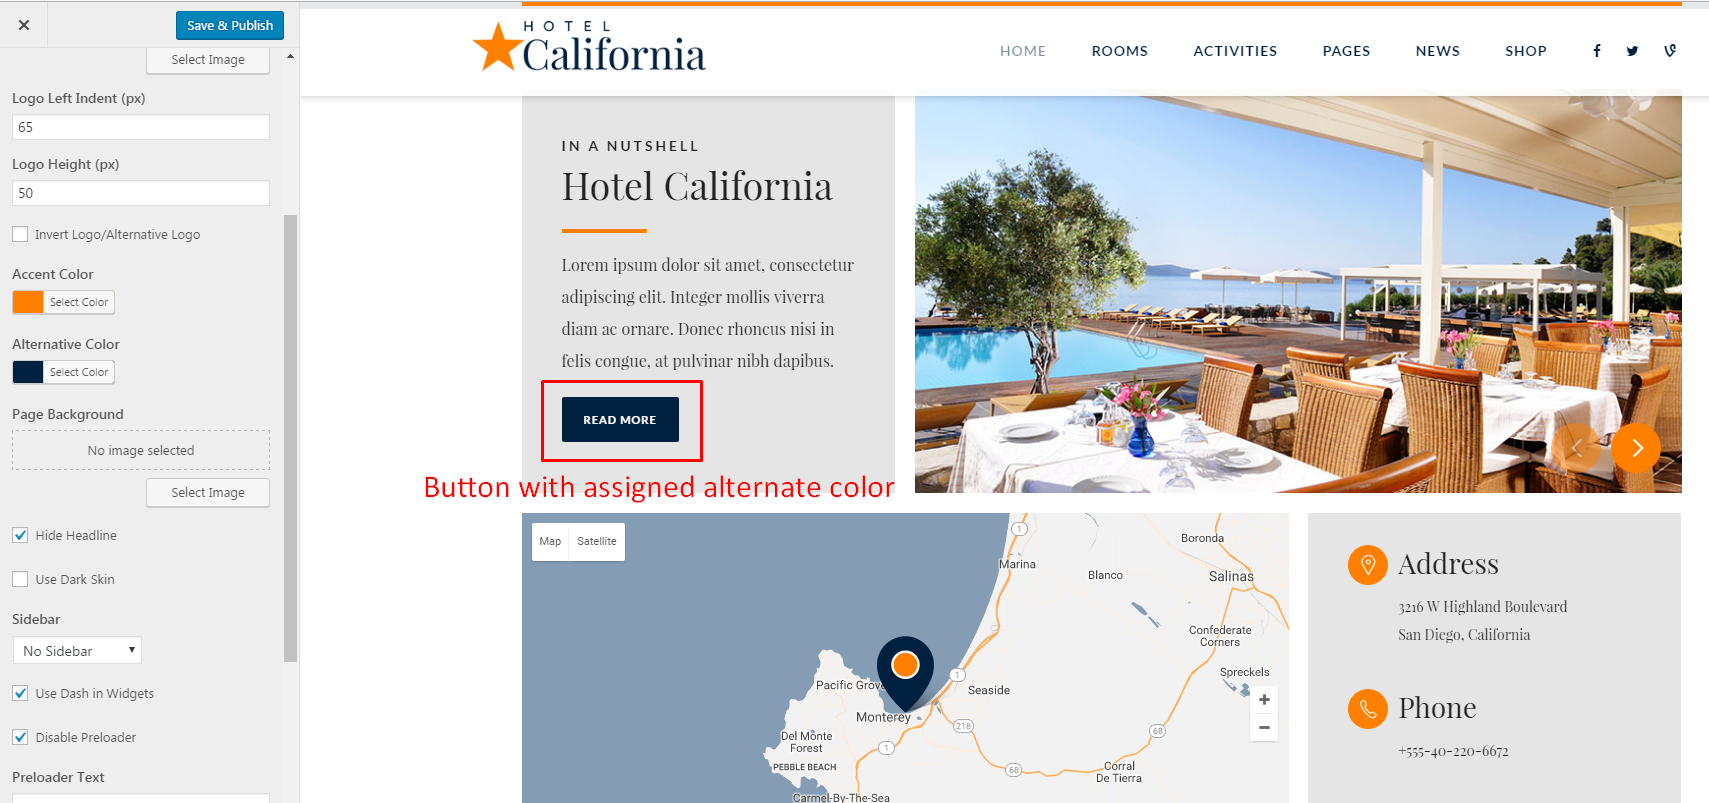 http://documentation.bold-themes.com/hotel/wp-content/uploads/sites/2/2016/10/14.png